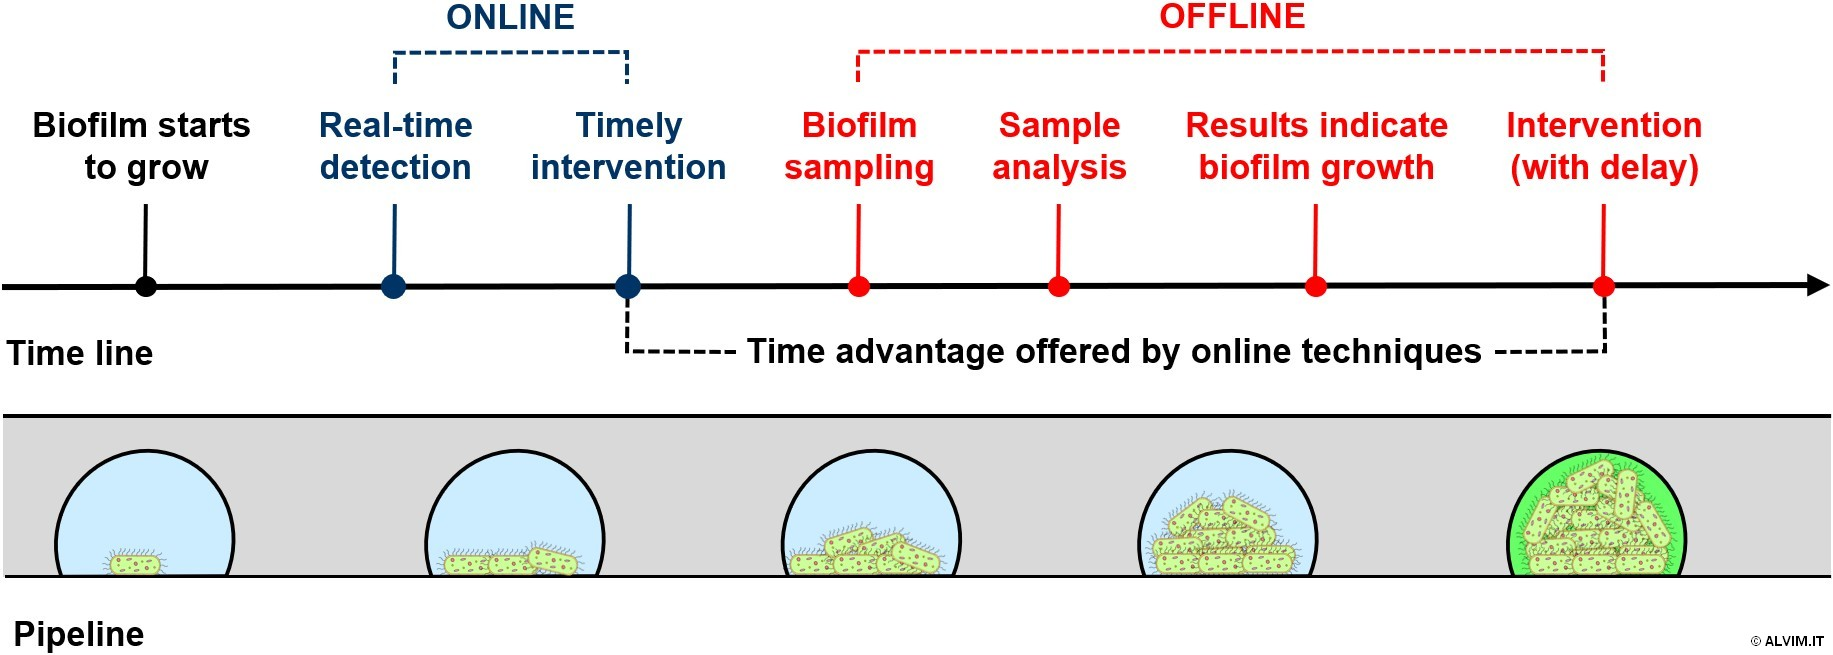 ONLINE VS OFFLINE techniques for biofilm monitoring